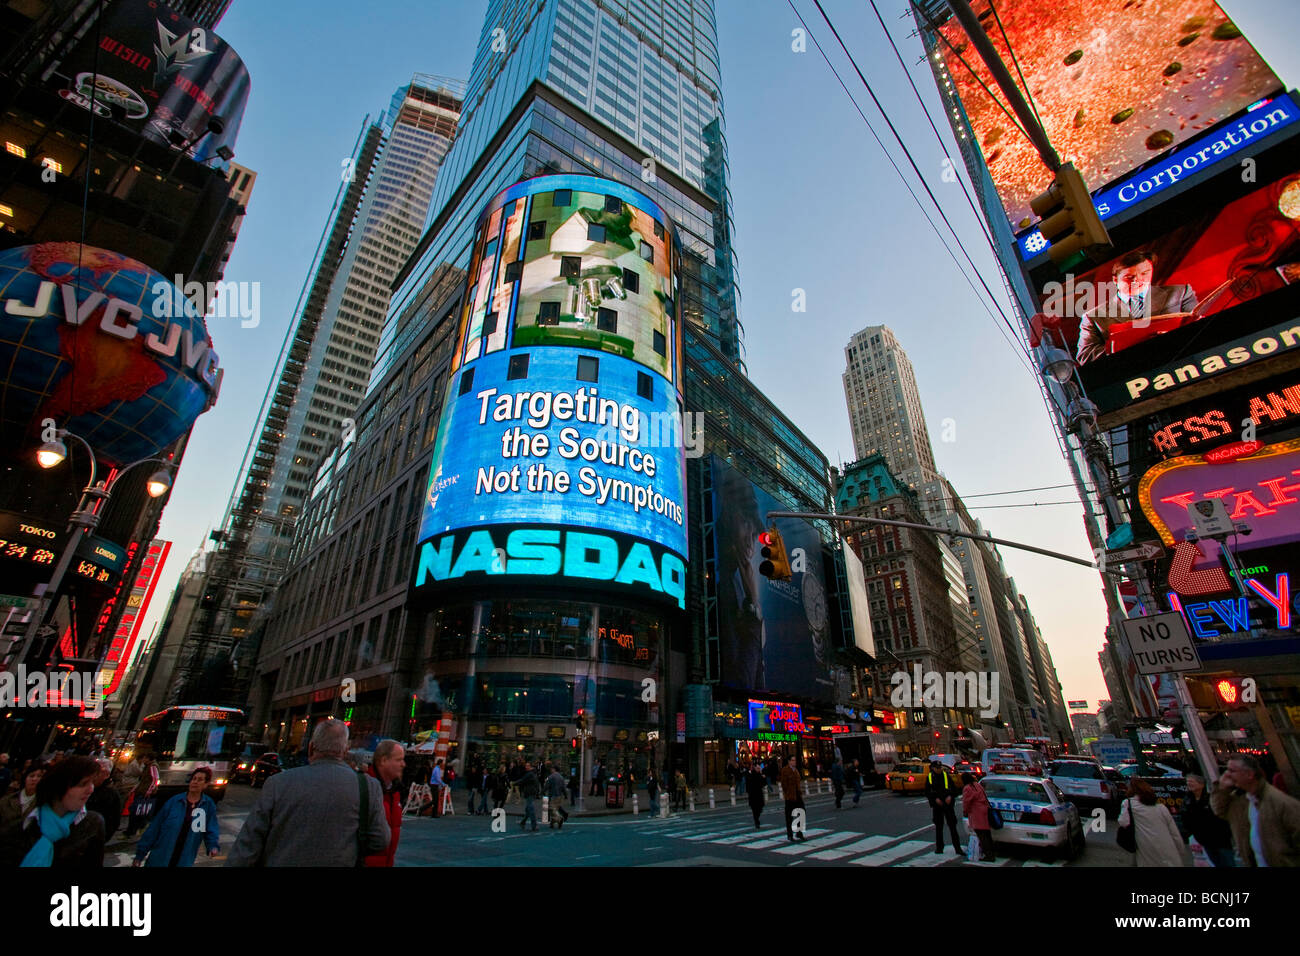 the nasdaq stock exchange building in times square in new york city stock photo royalty free. Black Bedroom Furniture Sets. Home Design Ideas